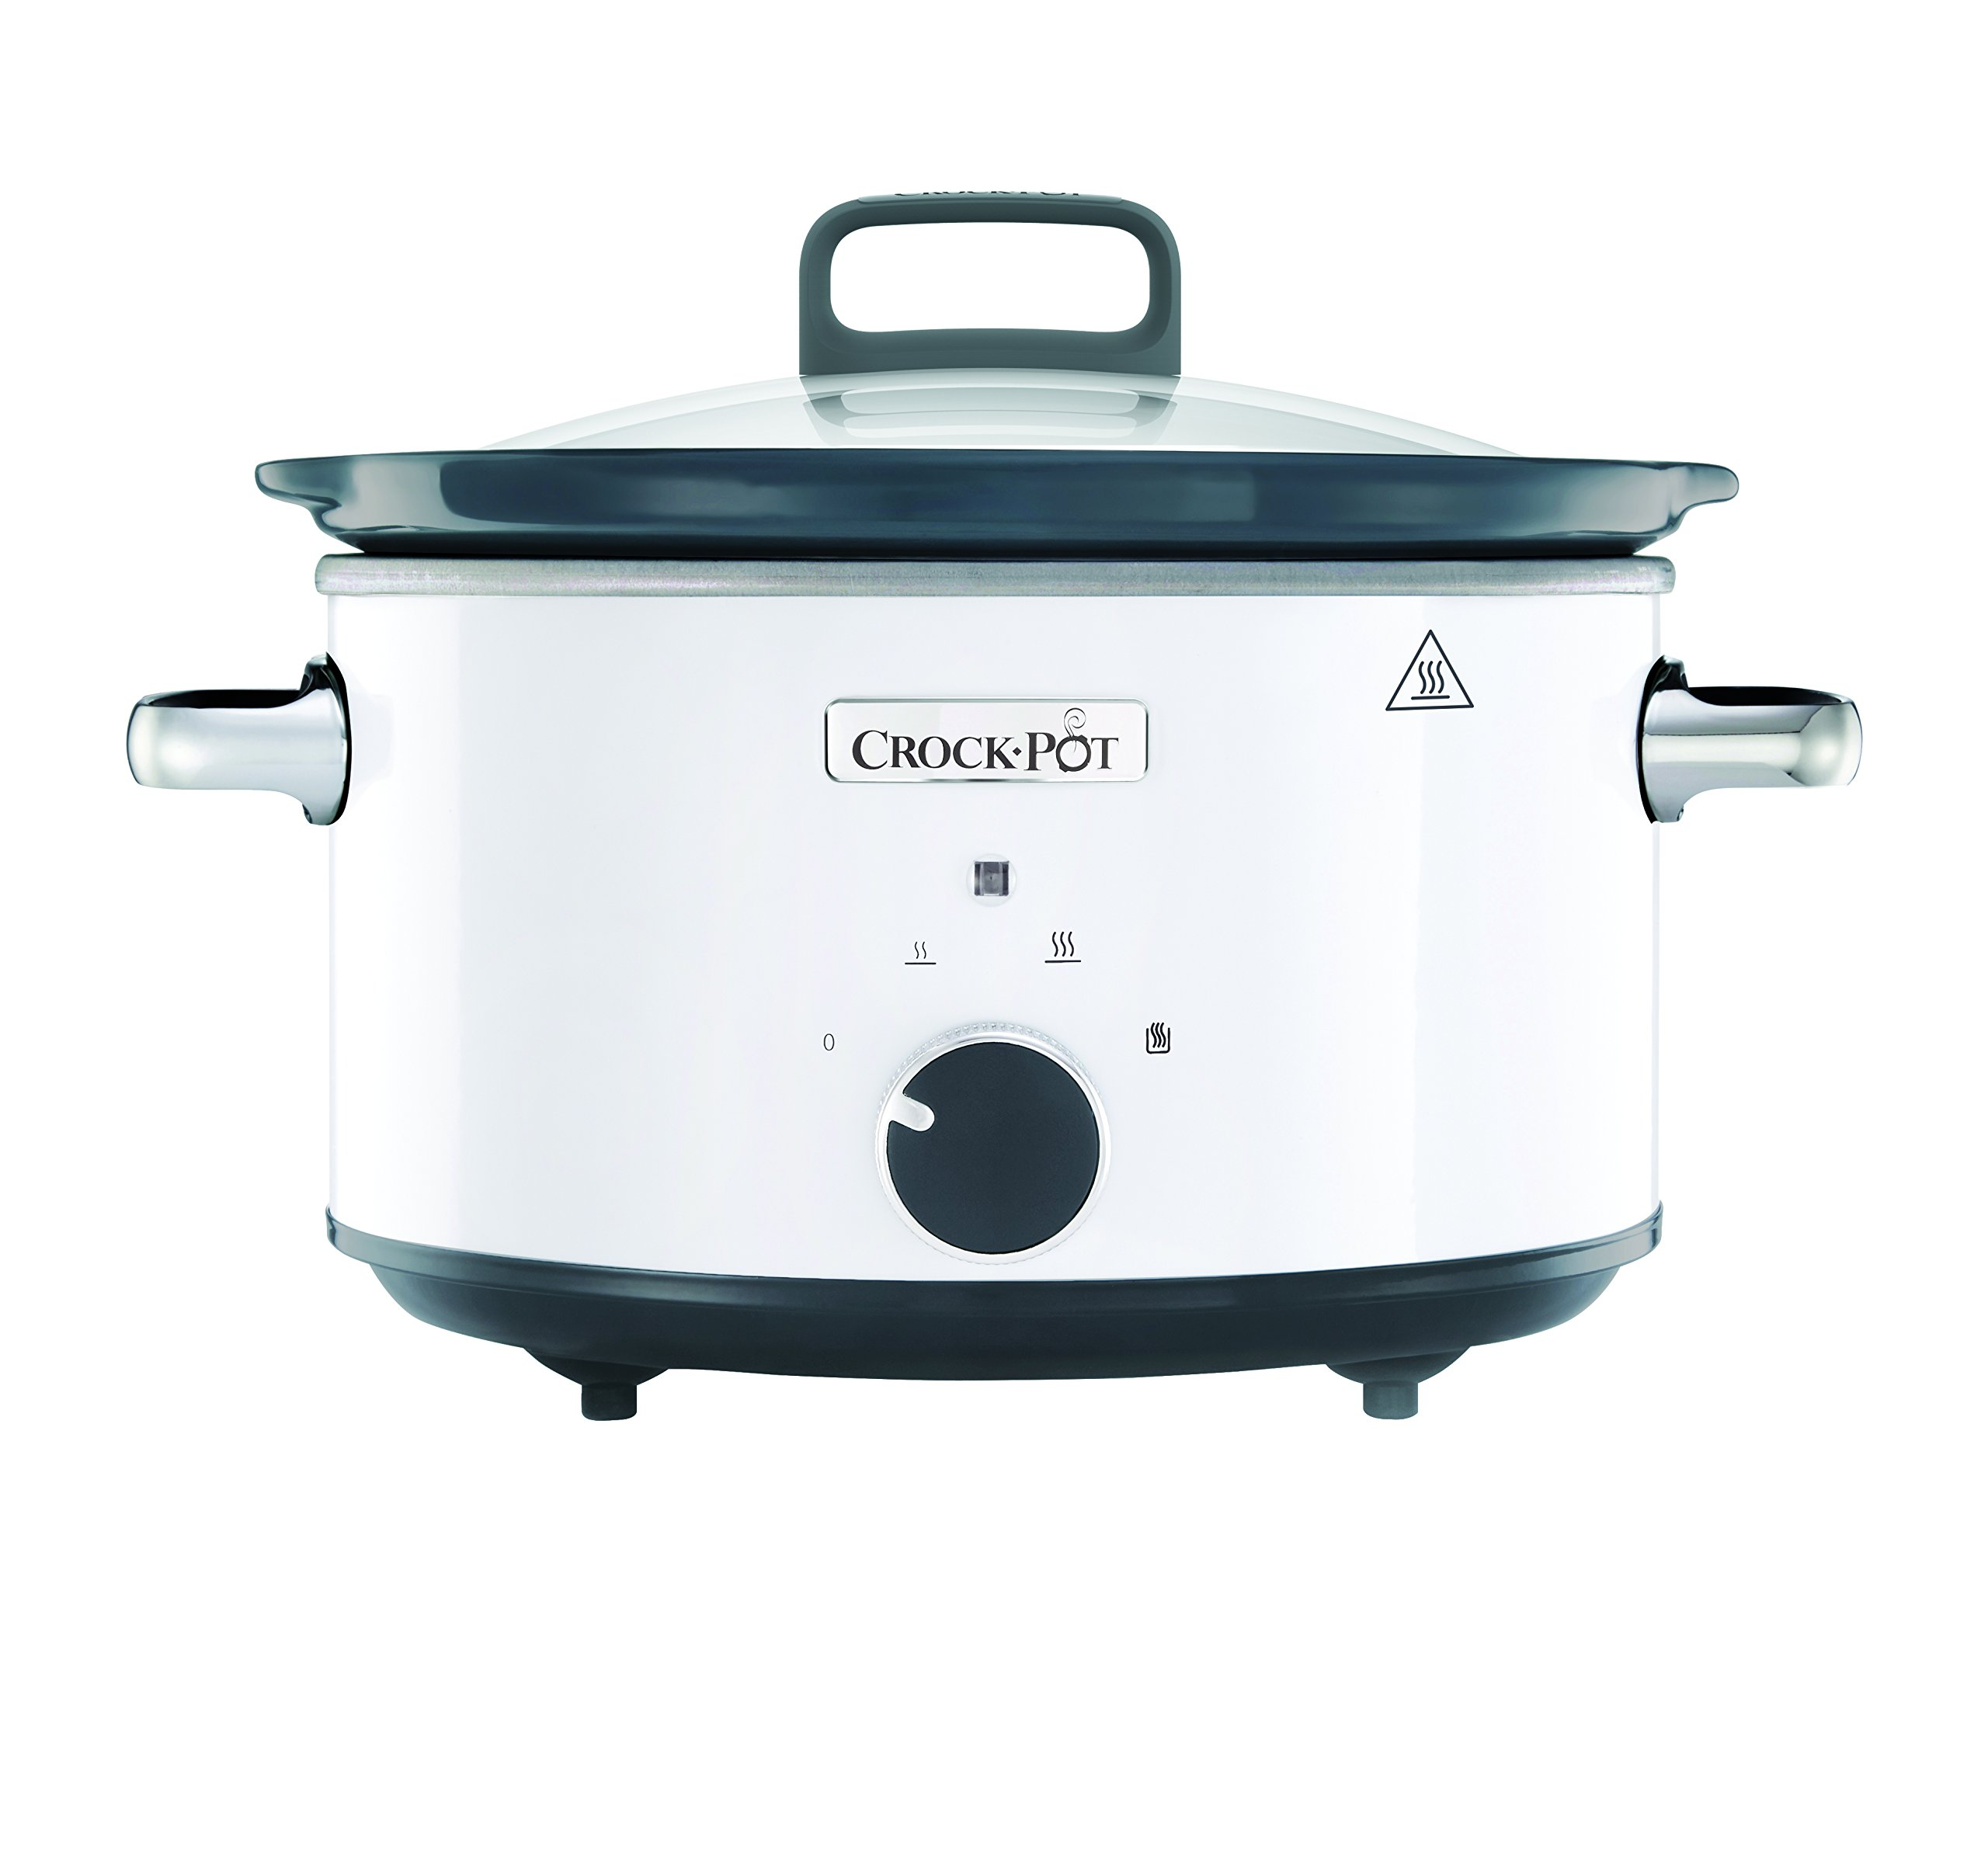 Crock-Pot CSC030X 220 Volts (Not for USA - European Cord) Slow Cooker, 3.5-Liter, White by Crock-Pot